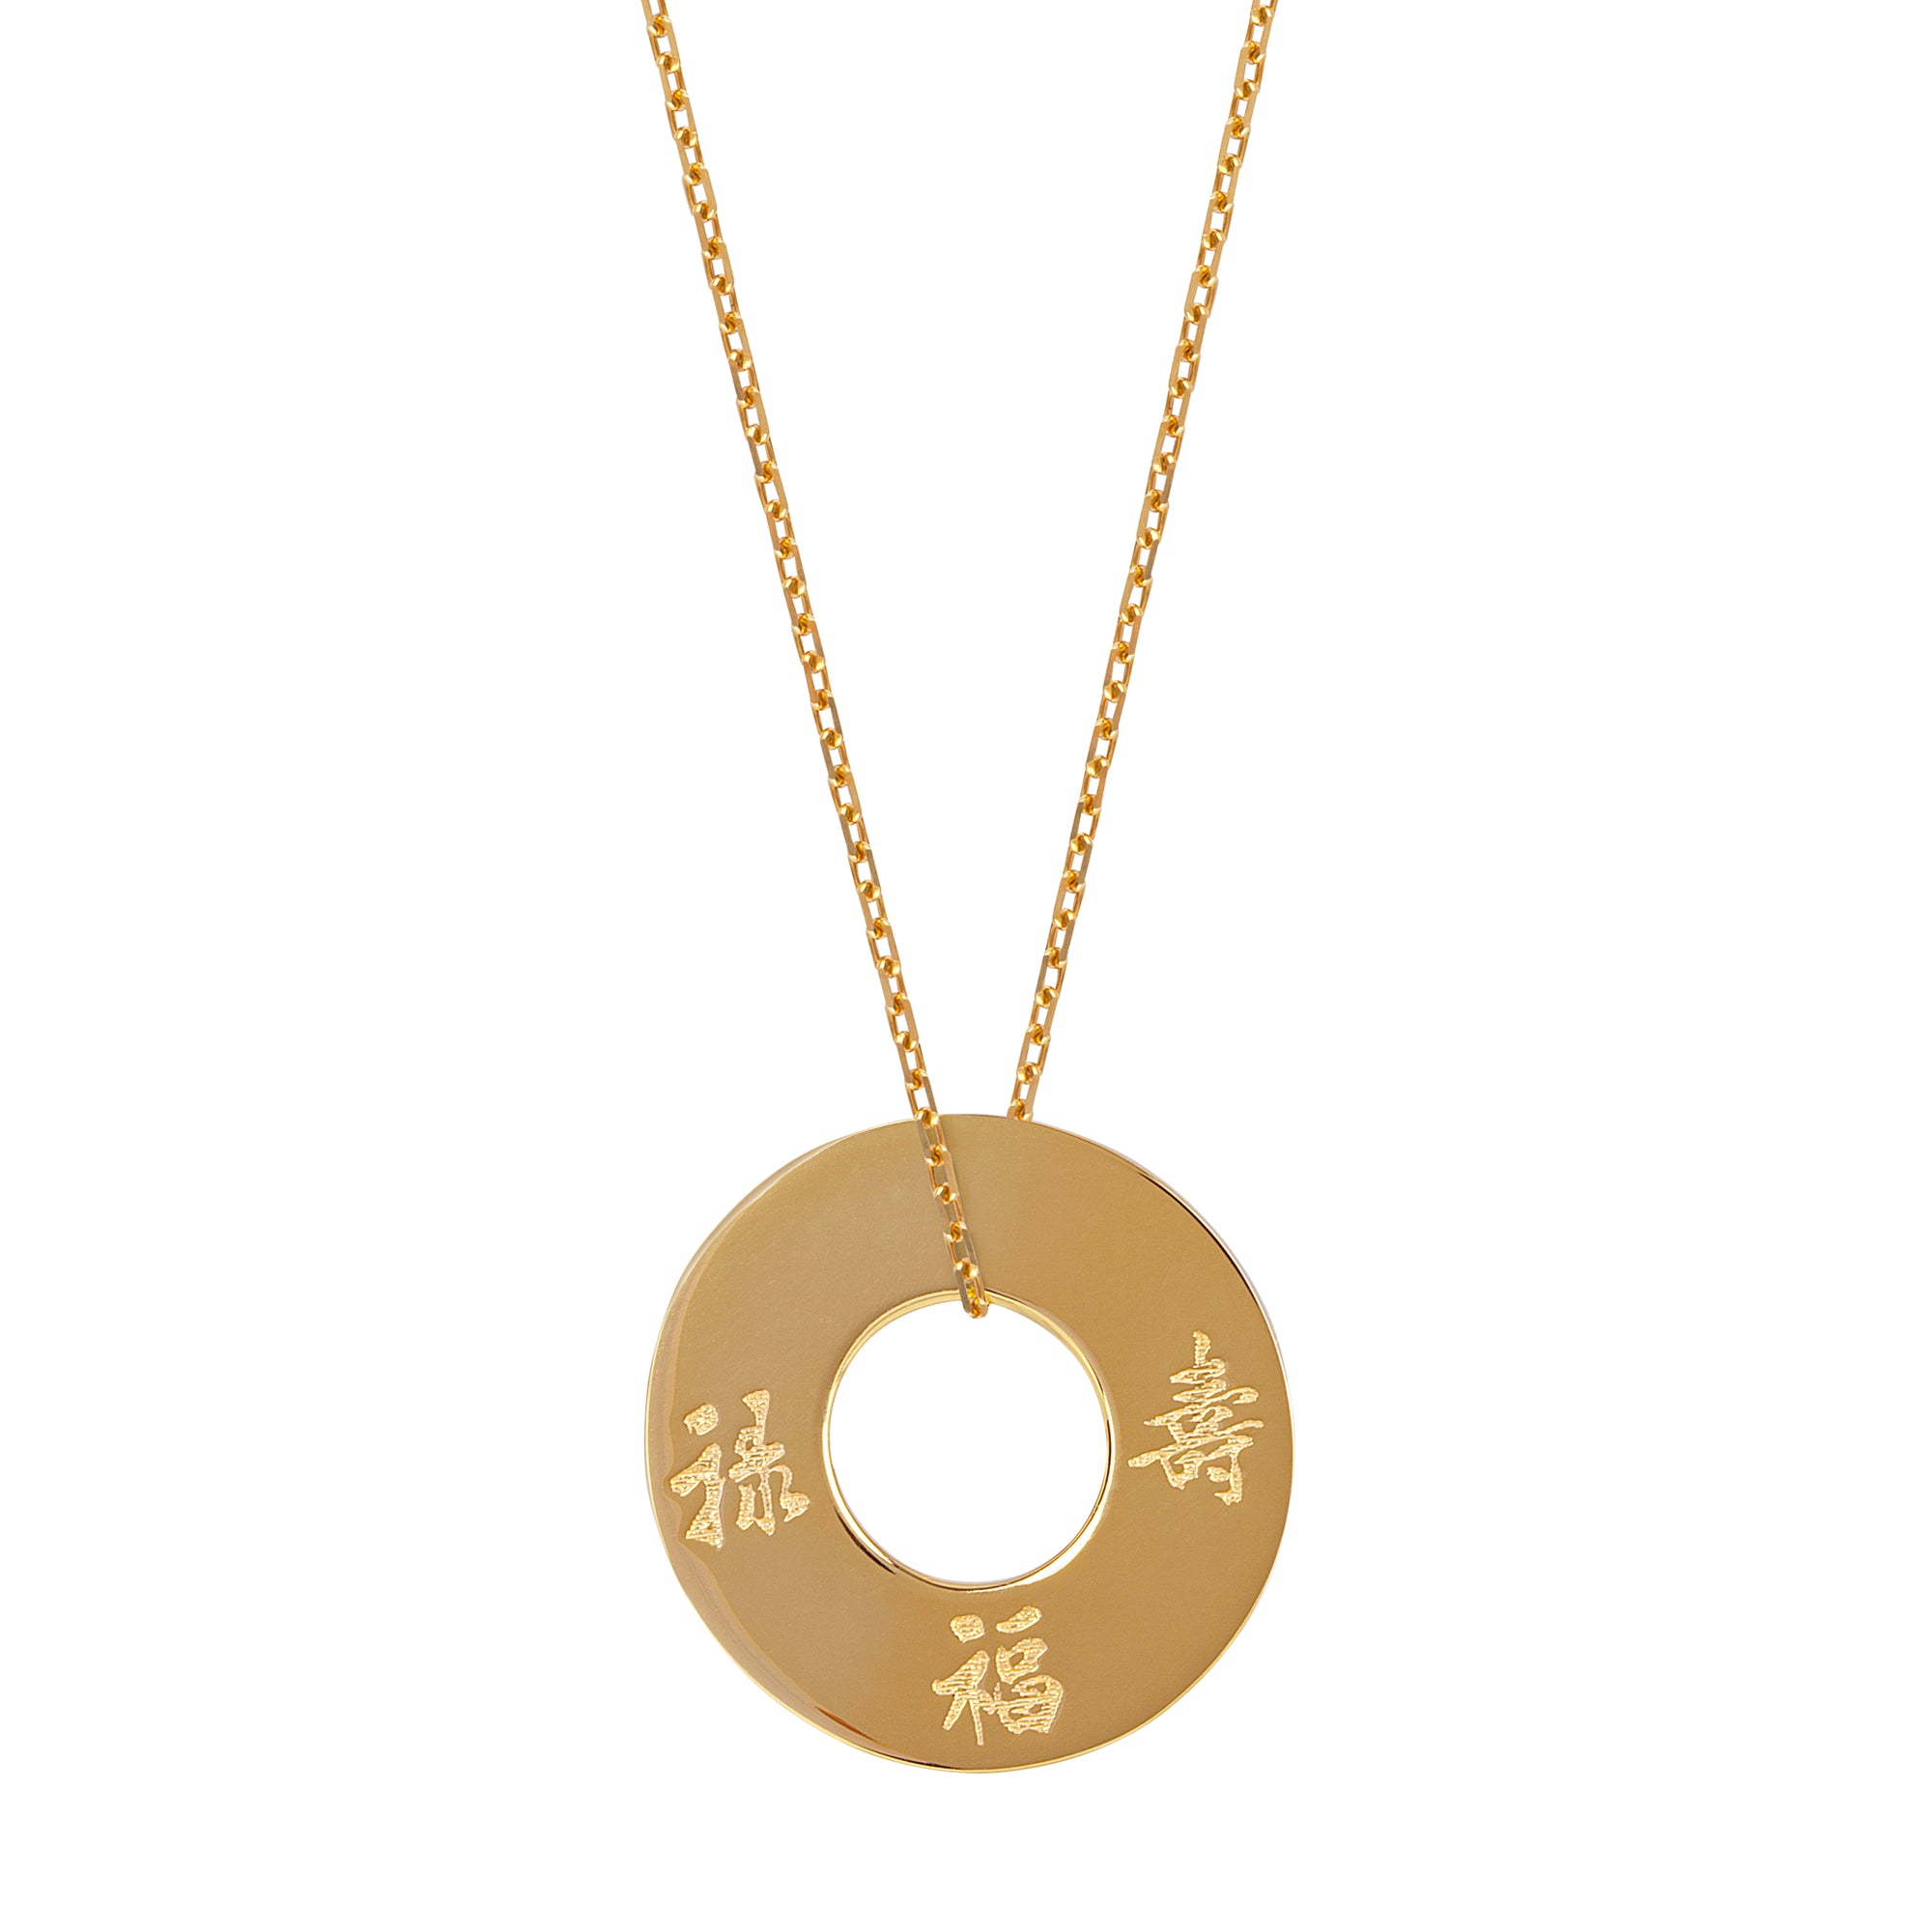 THREE LUCKY STARS - ROUND HOLE NECKLACE ( Symbolising Luck, Prosperity and Longevity)